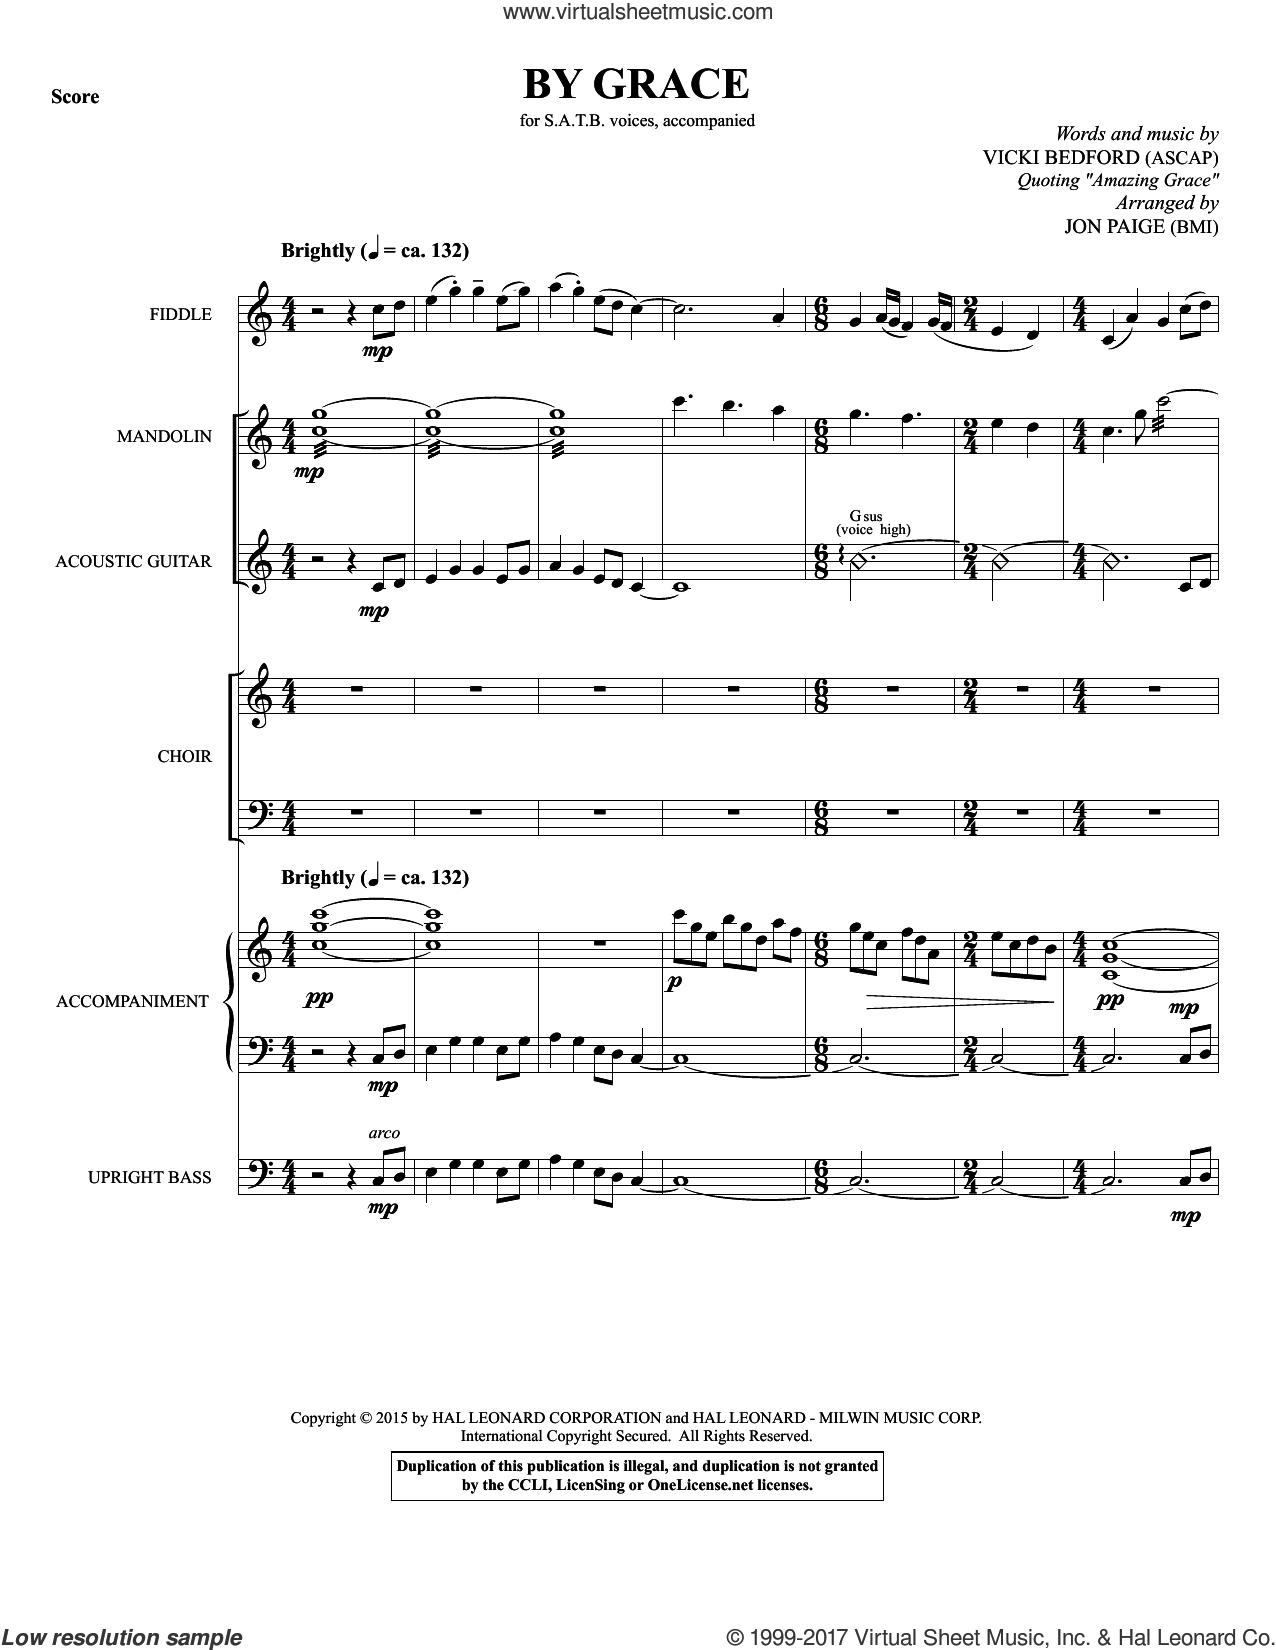 By Grace (COMPLETE) sheet music for orchestra/band by Jon Paige, Vicki Bedford and Vicki Beford, intermediate skill level